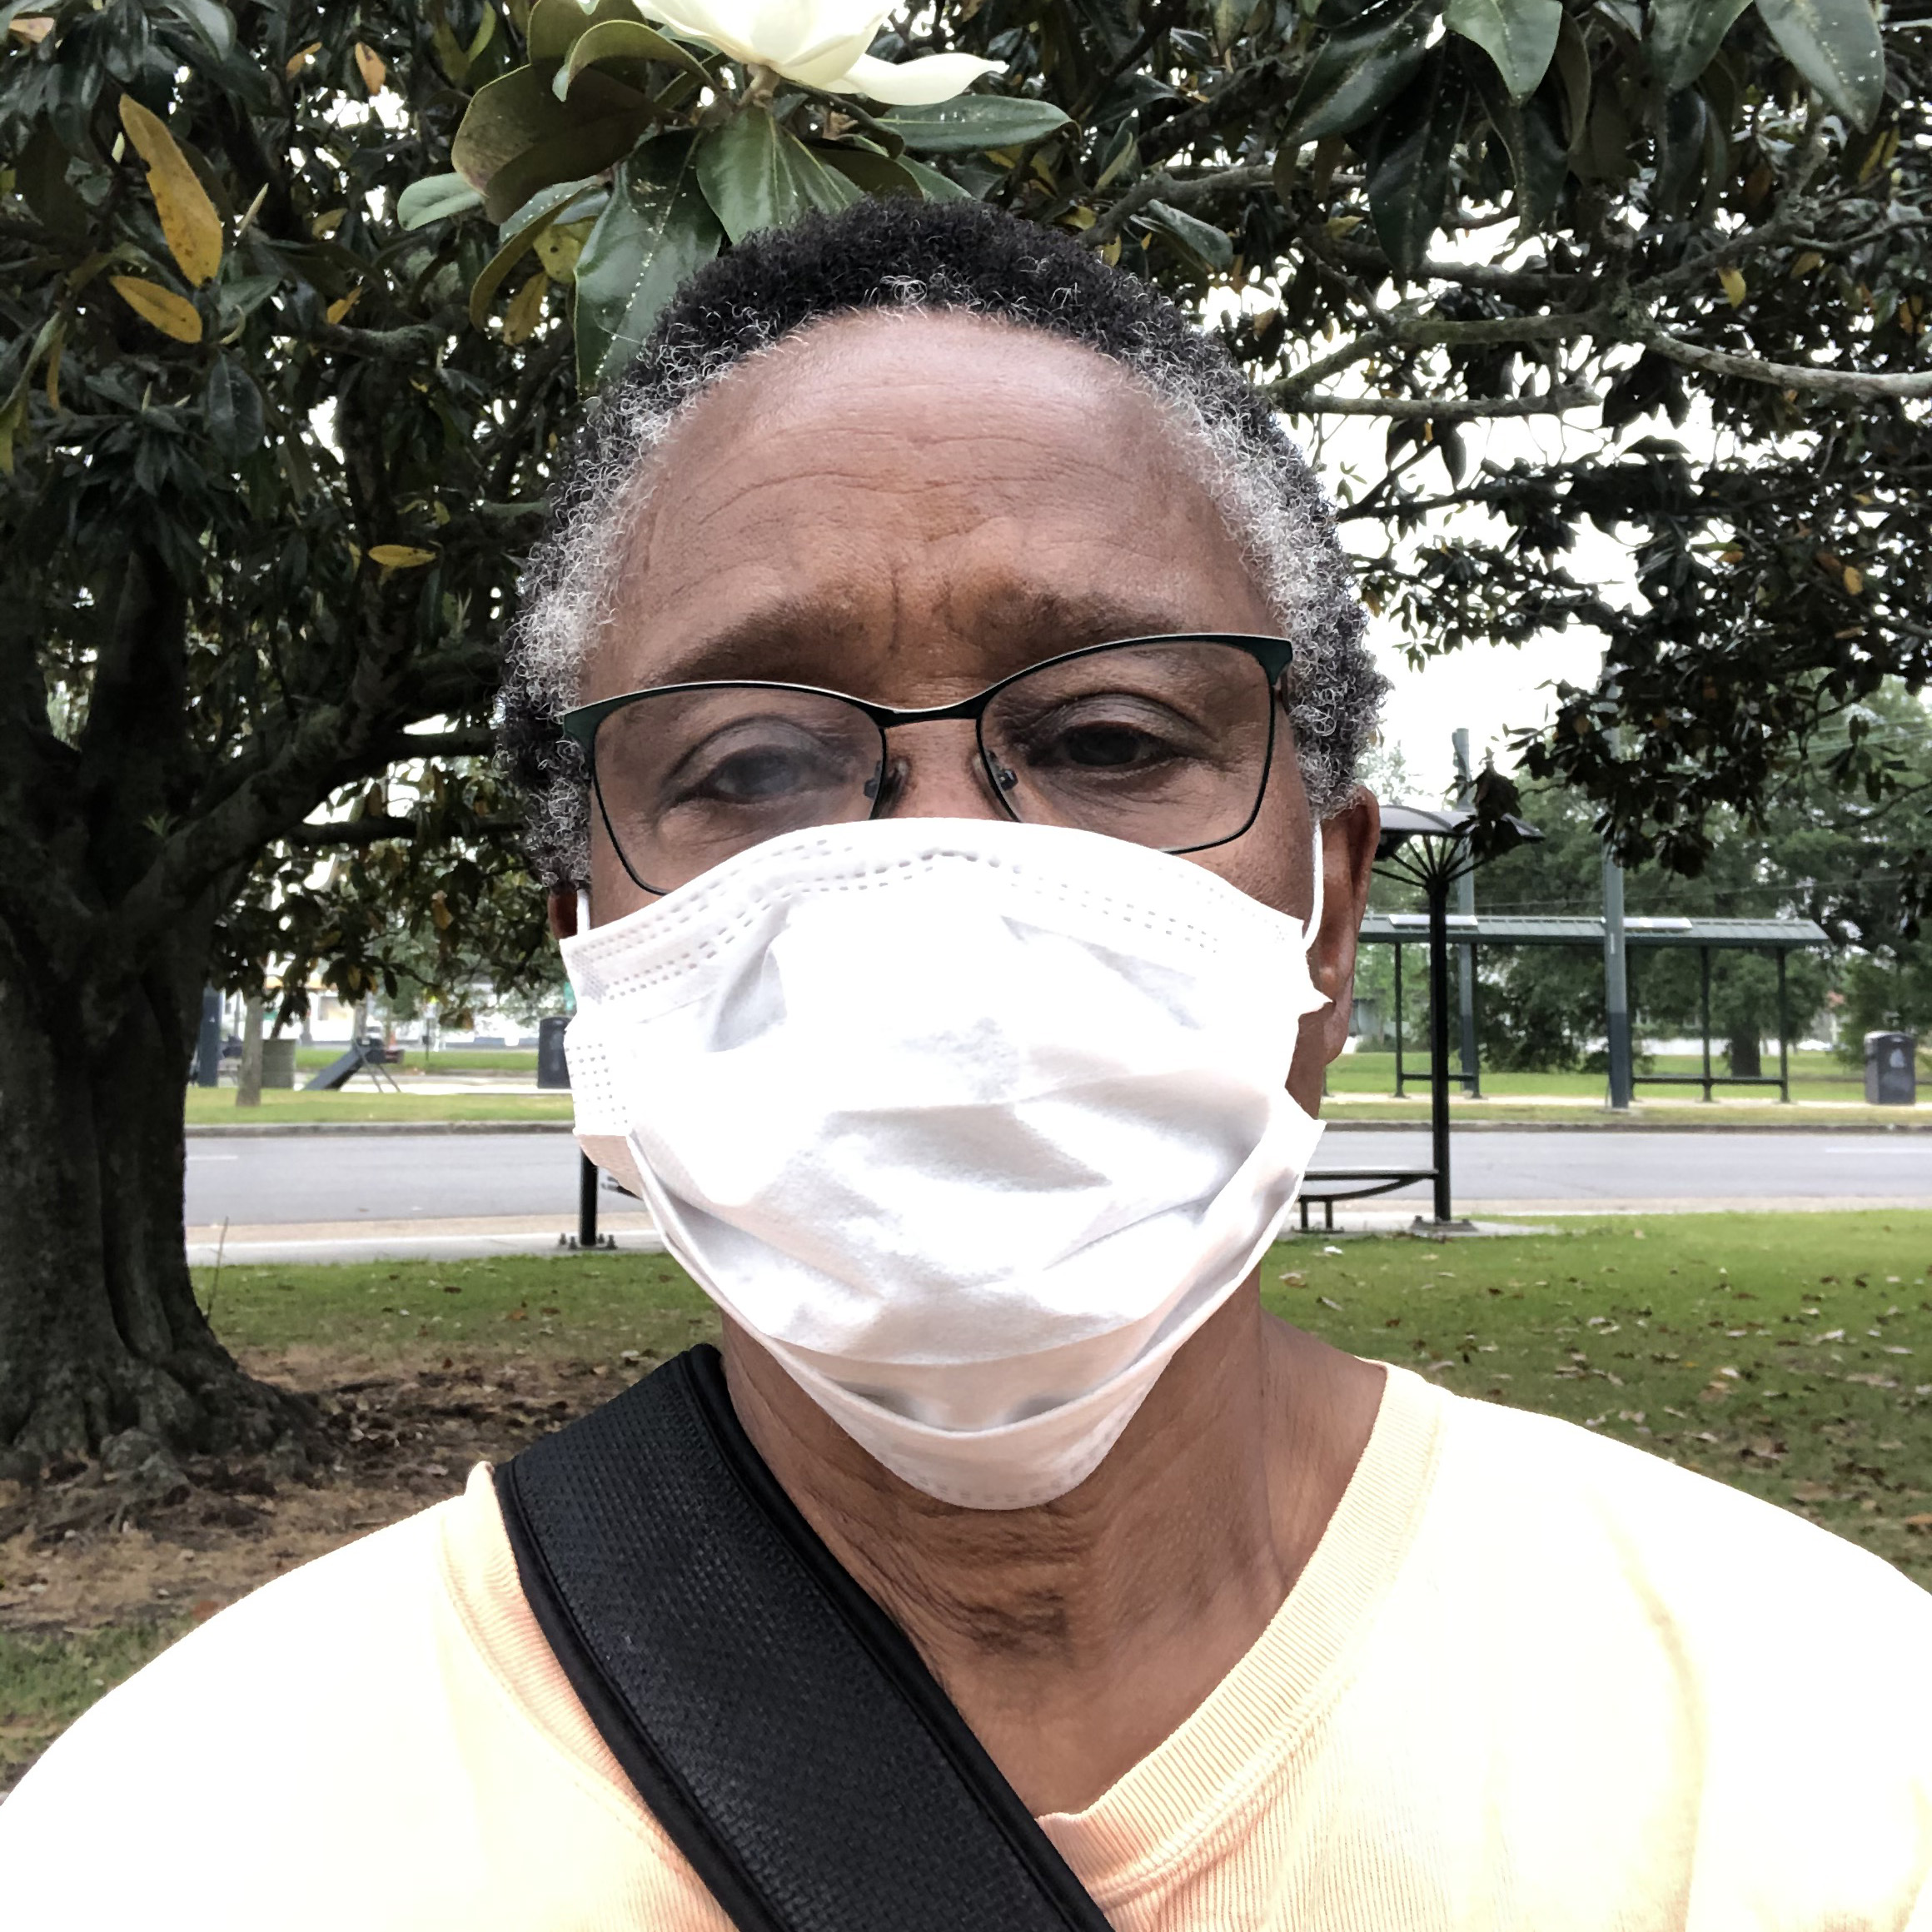 close up portrait of freddye hill wearing a covid face mask outdoors in a park